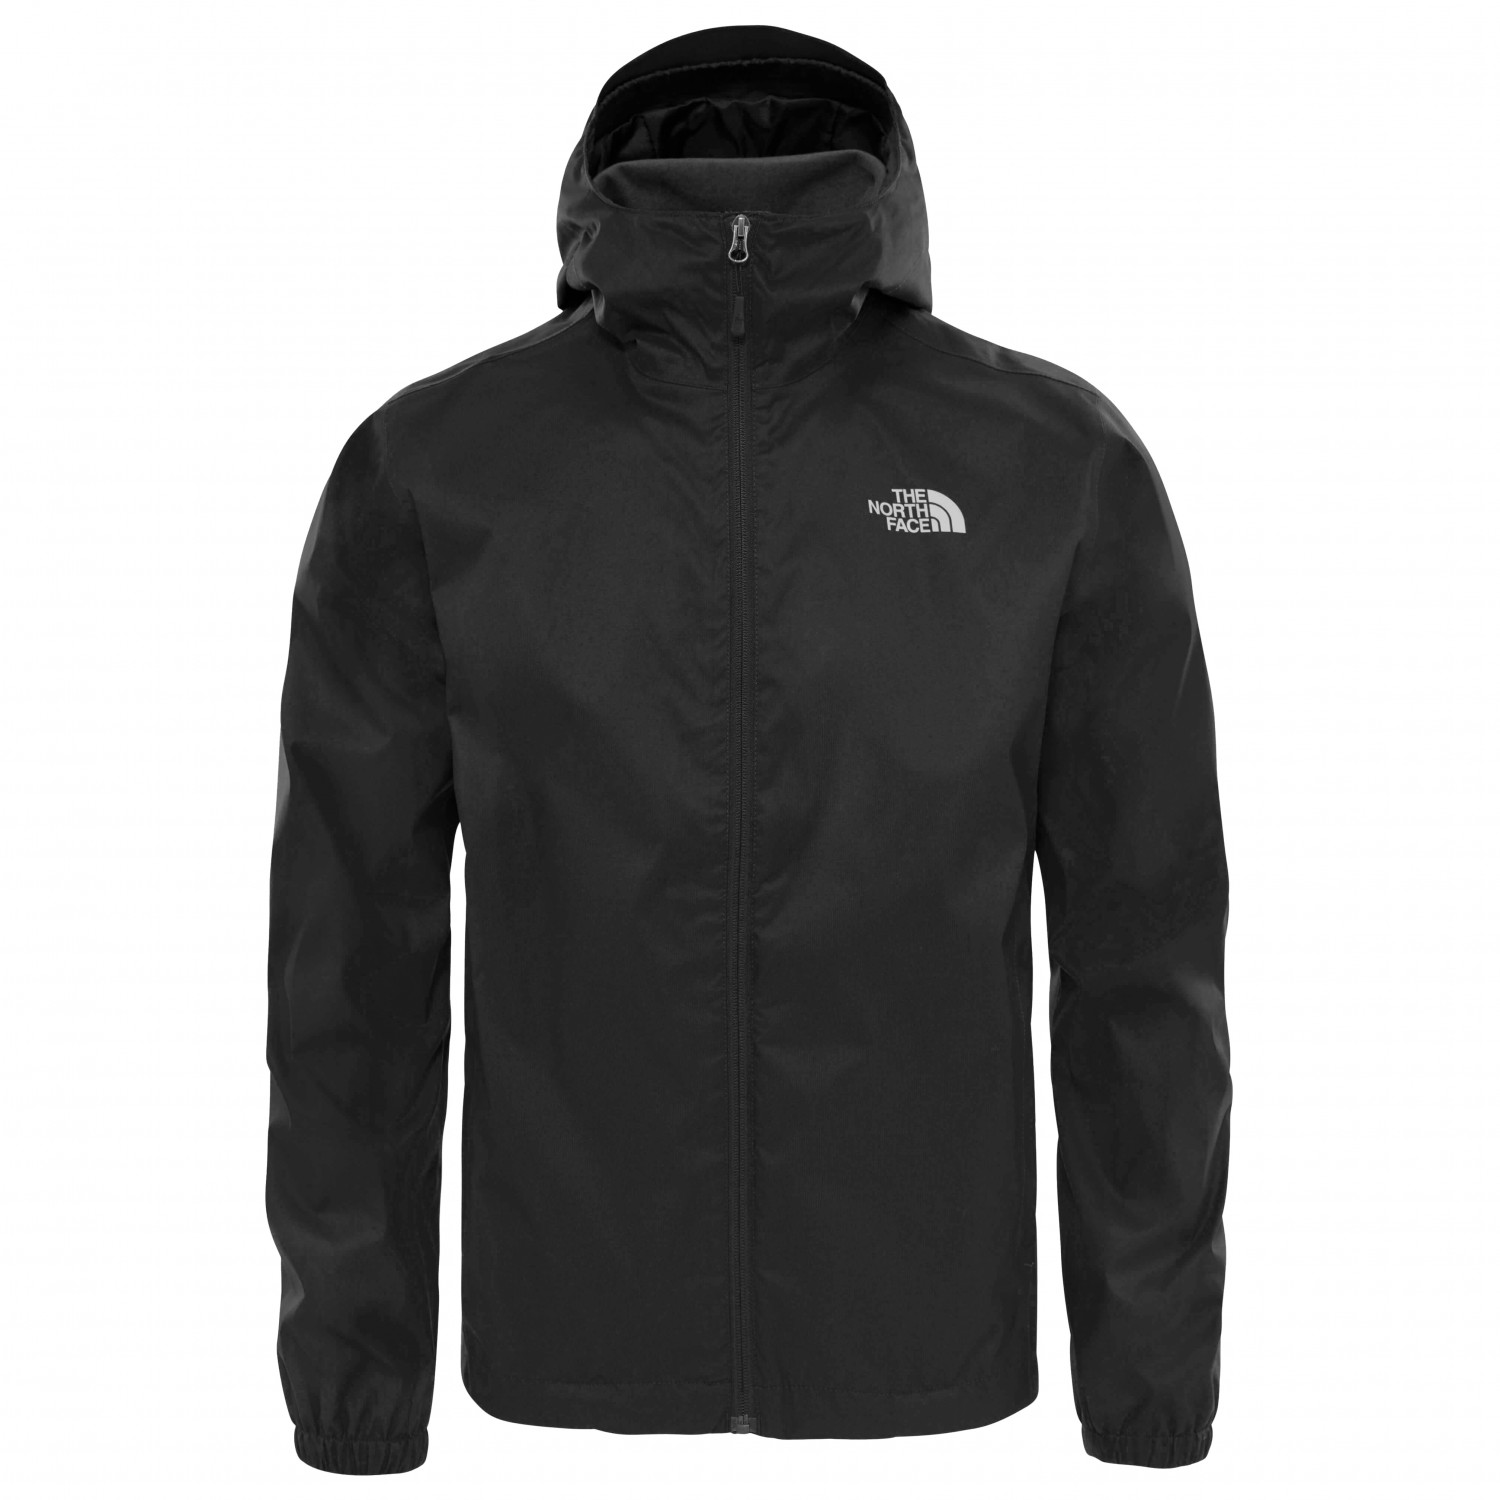 e0d71bf44 The North Face Quest Jacket - Waterproof Jacket Men's | Free UK ...